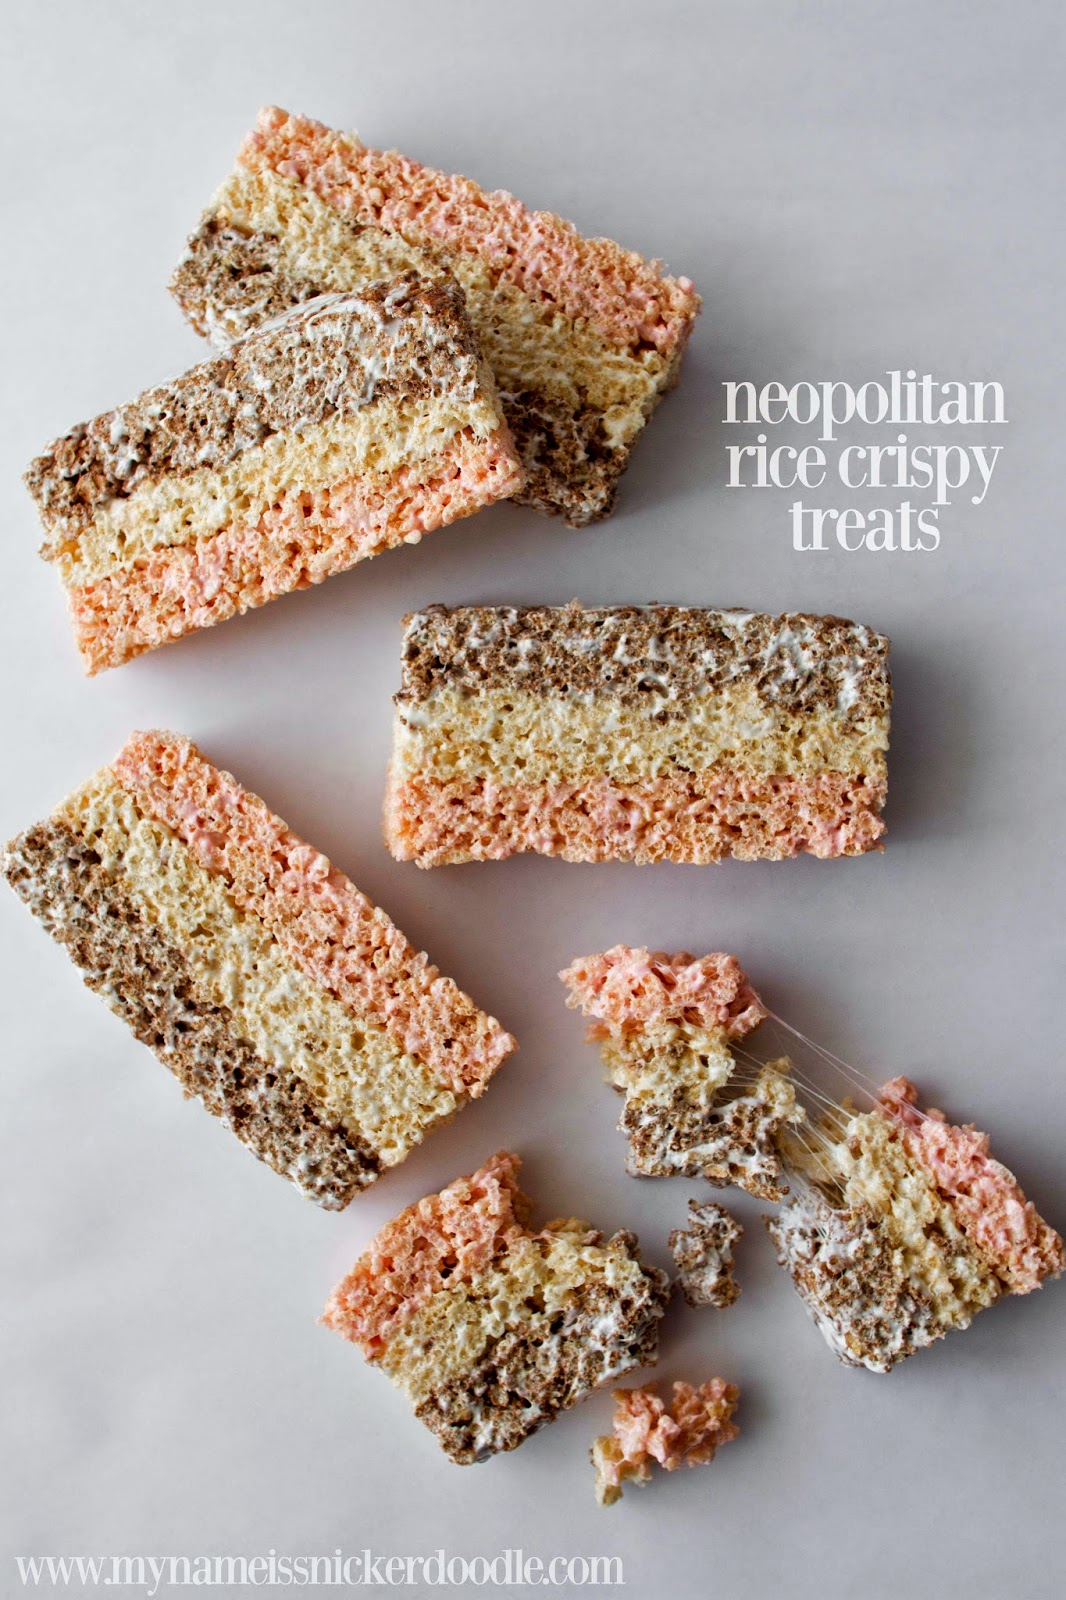 Neopolitan Rice Crisy Treats | My Name Is Snickerdoodle